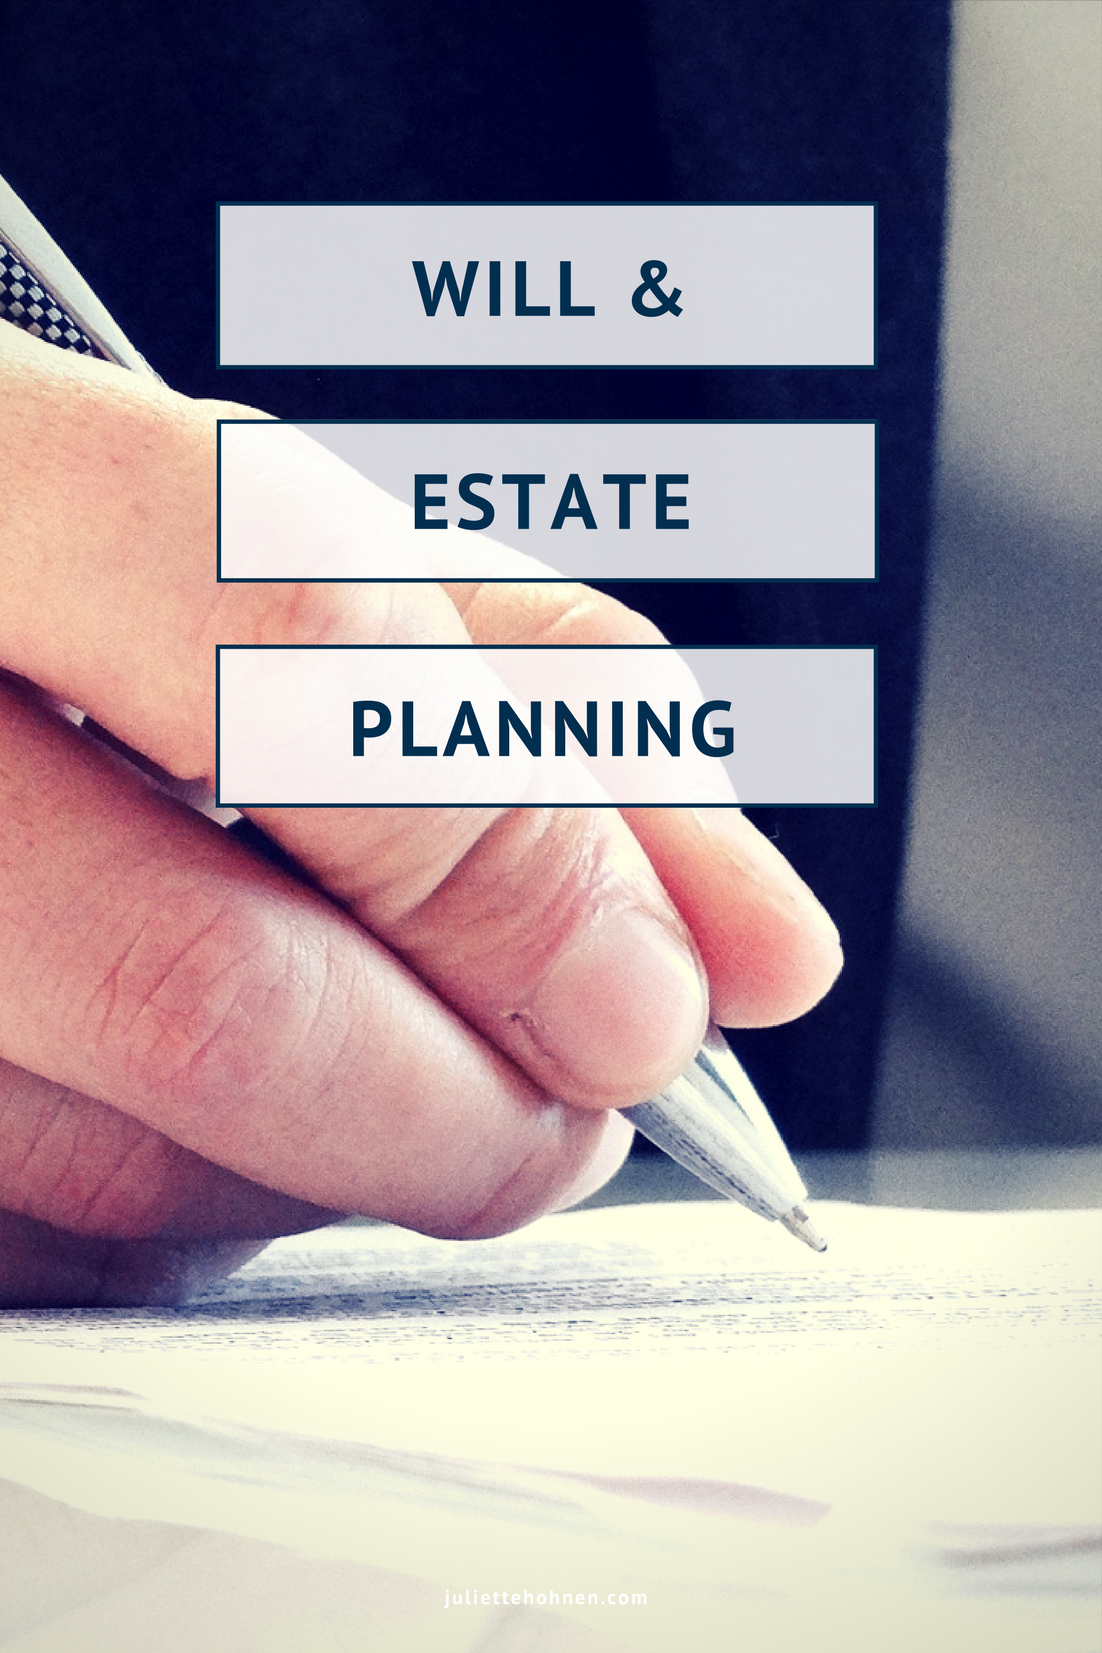 Will & Estate Planning